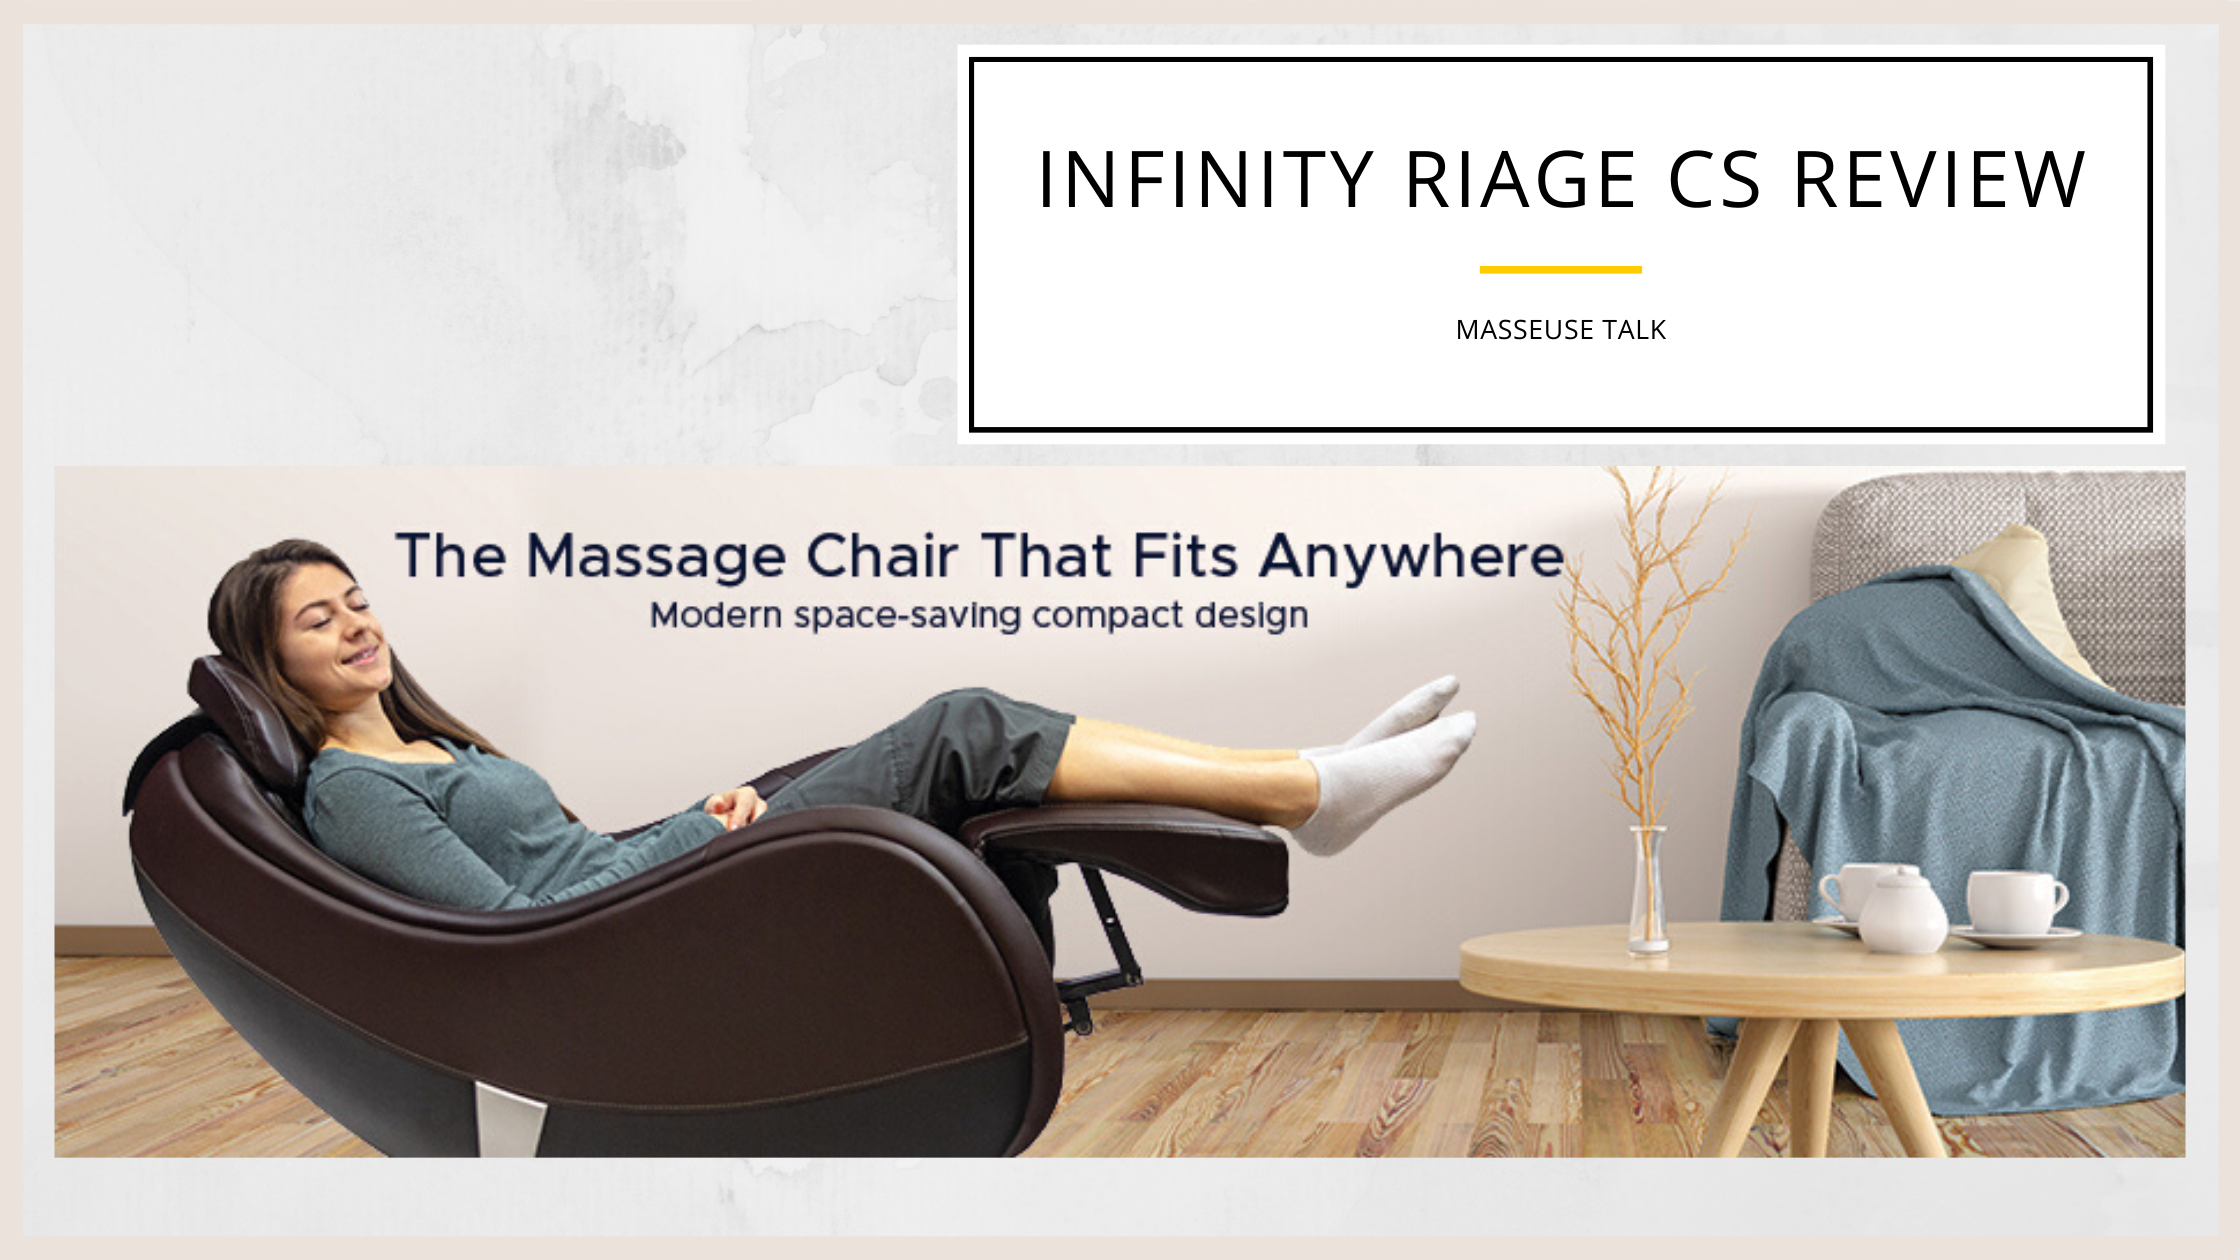 Infinity Riage CS Massage Chair